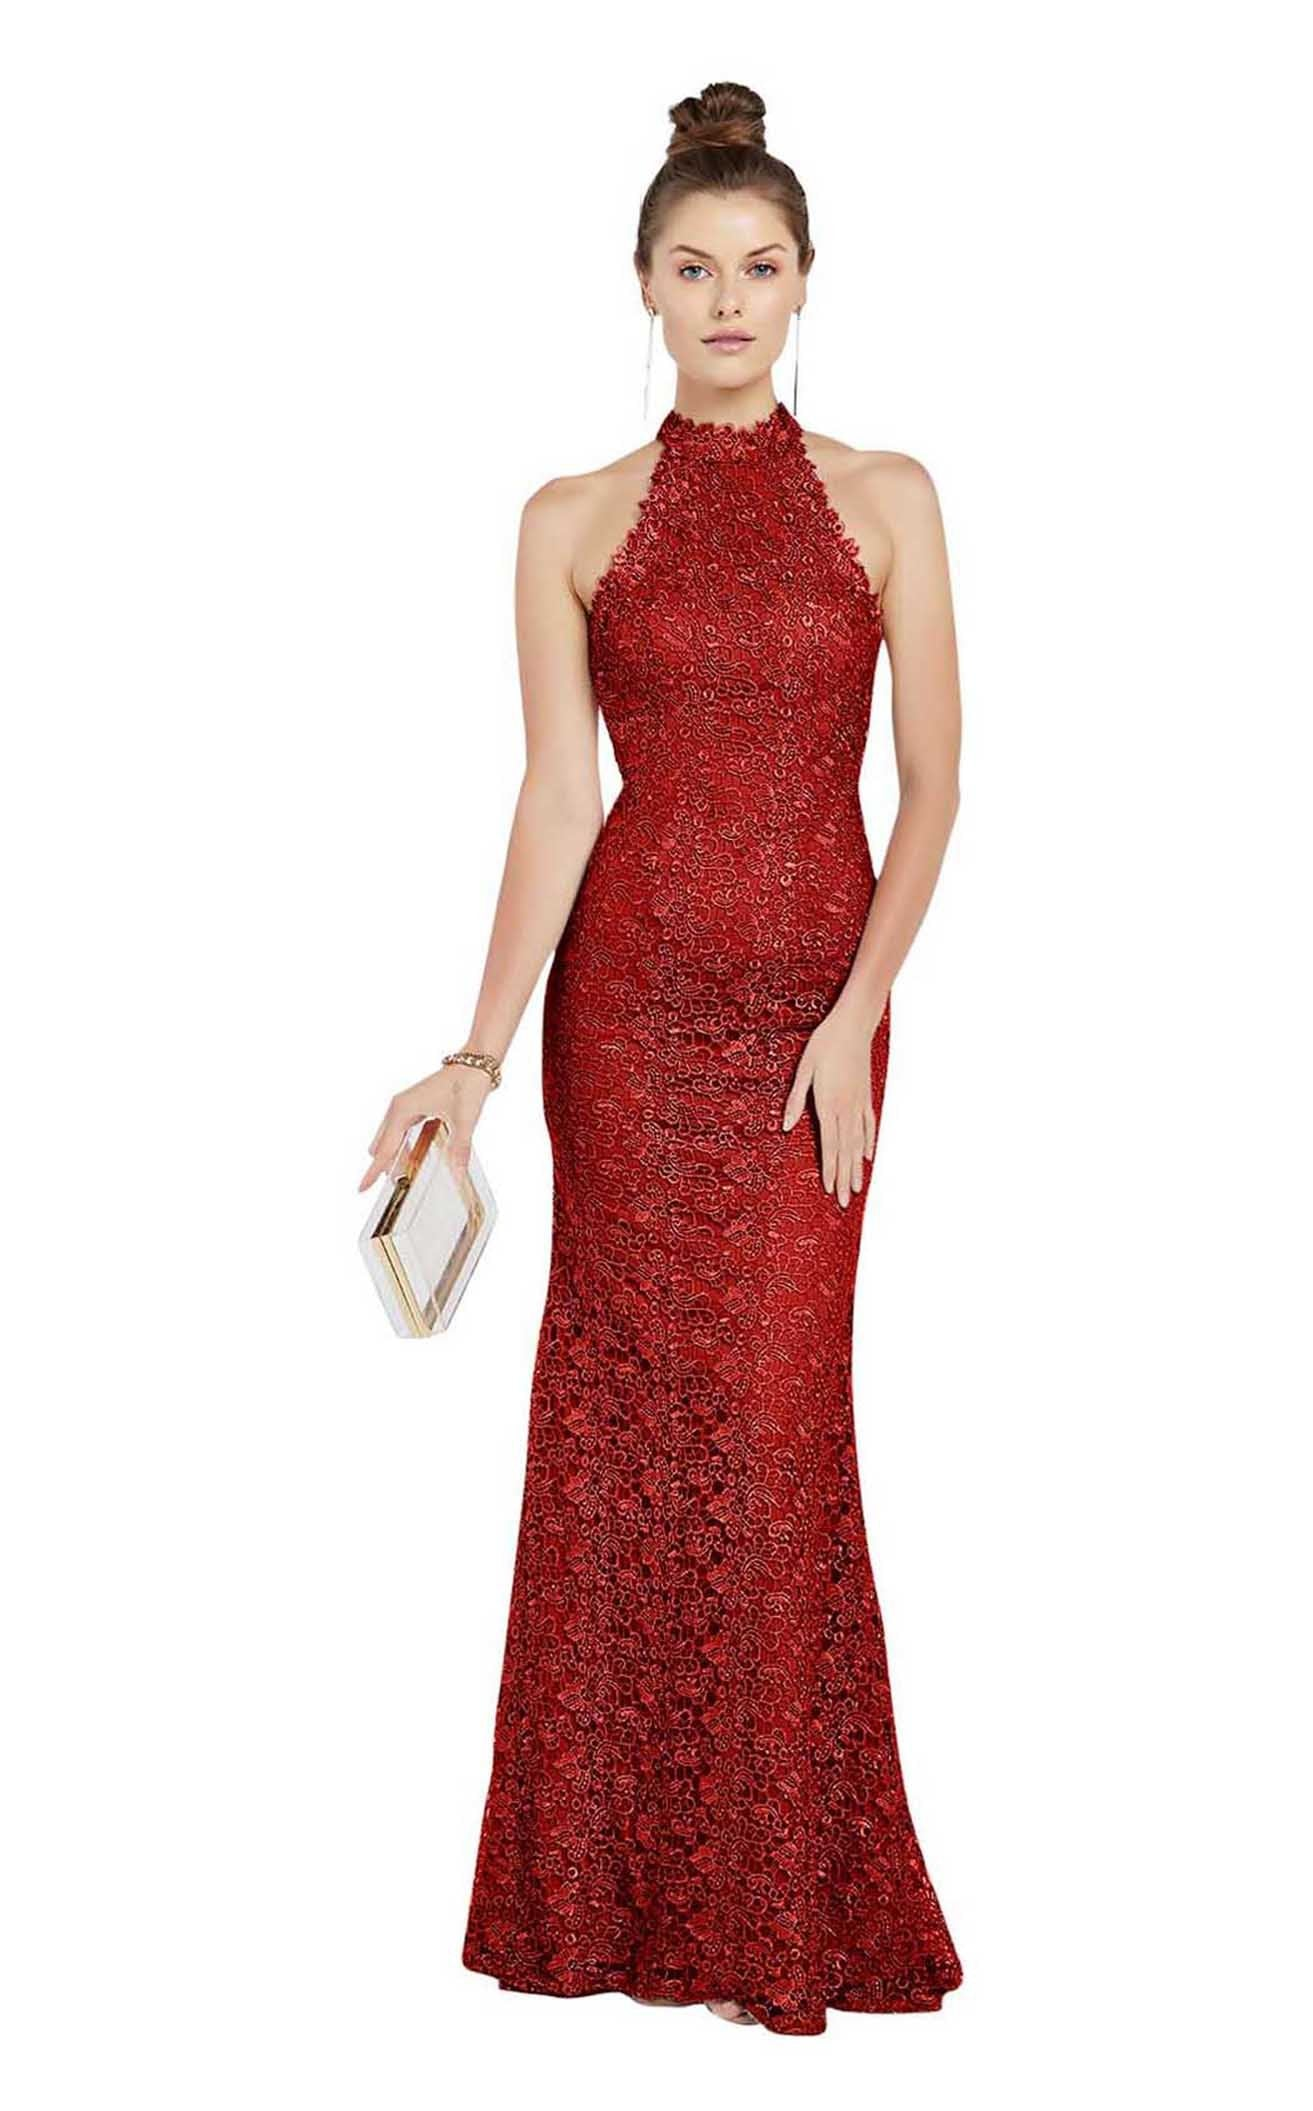 Alyce Paris - High Halter Lace Sheath Dress 60484SC